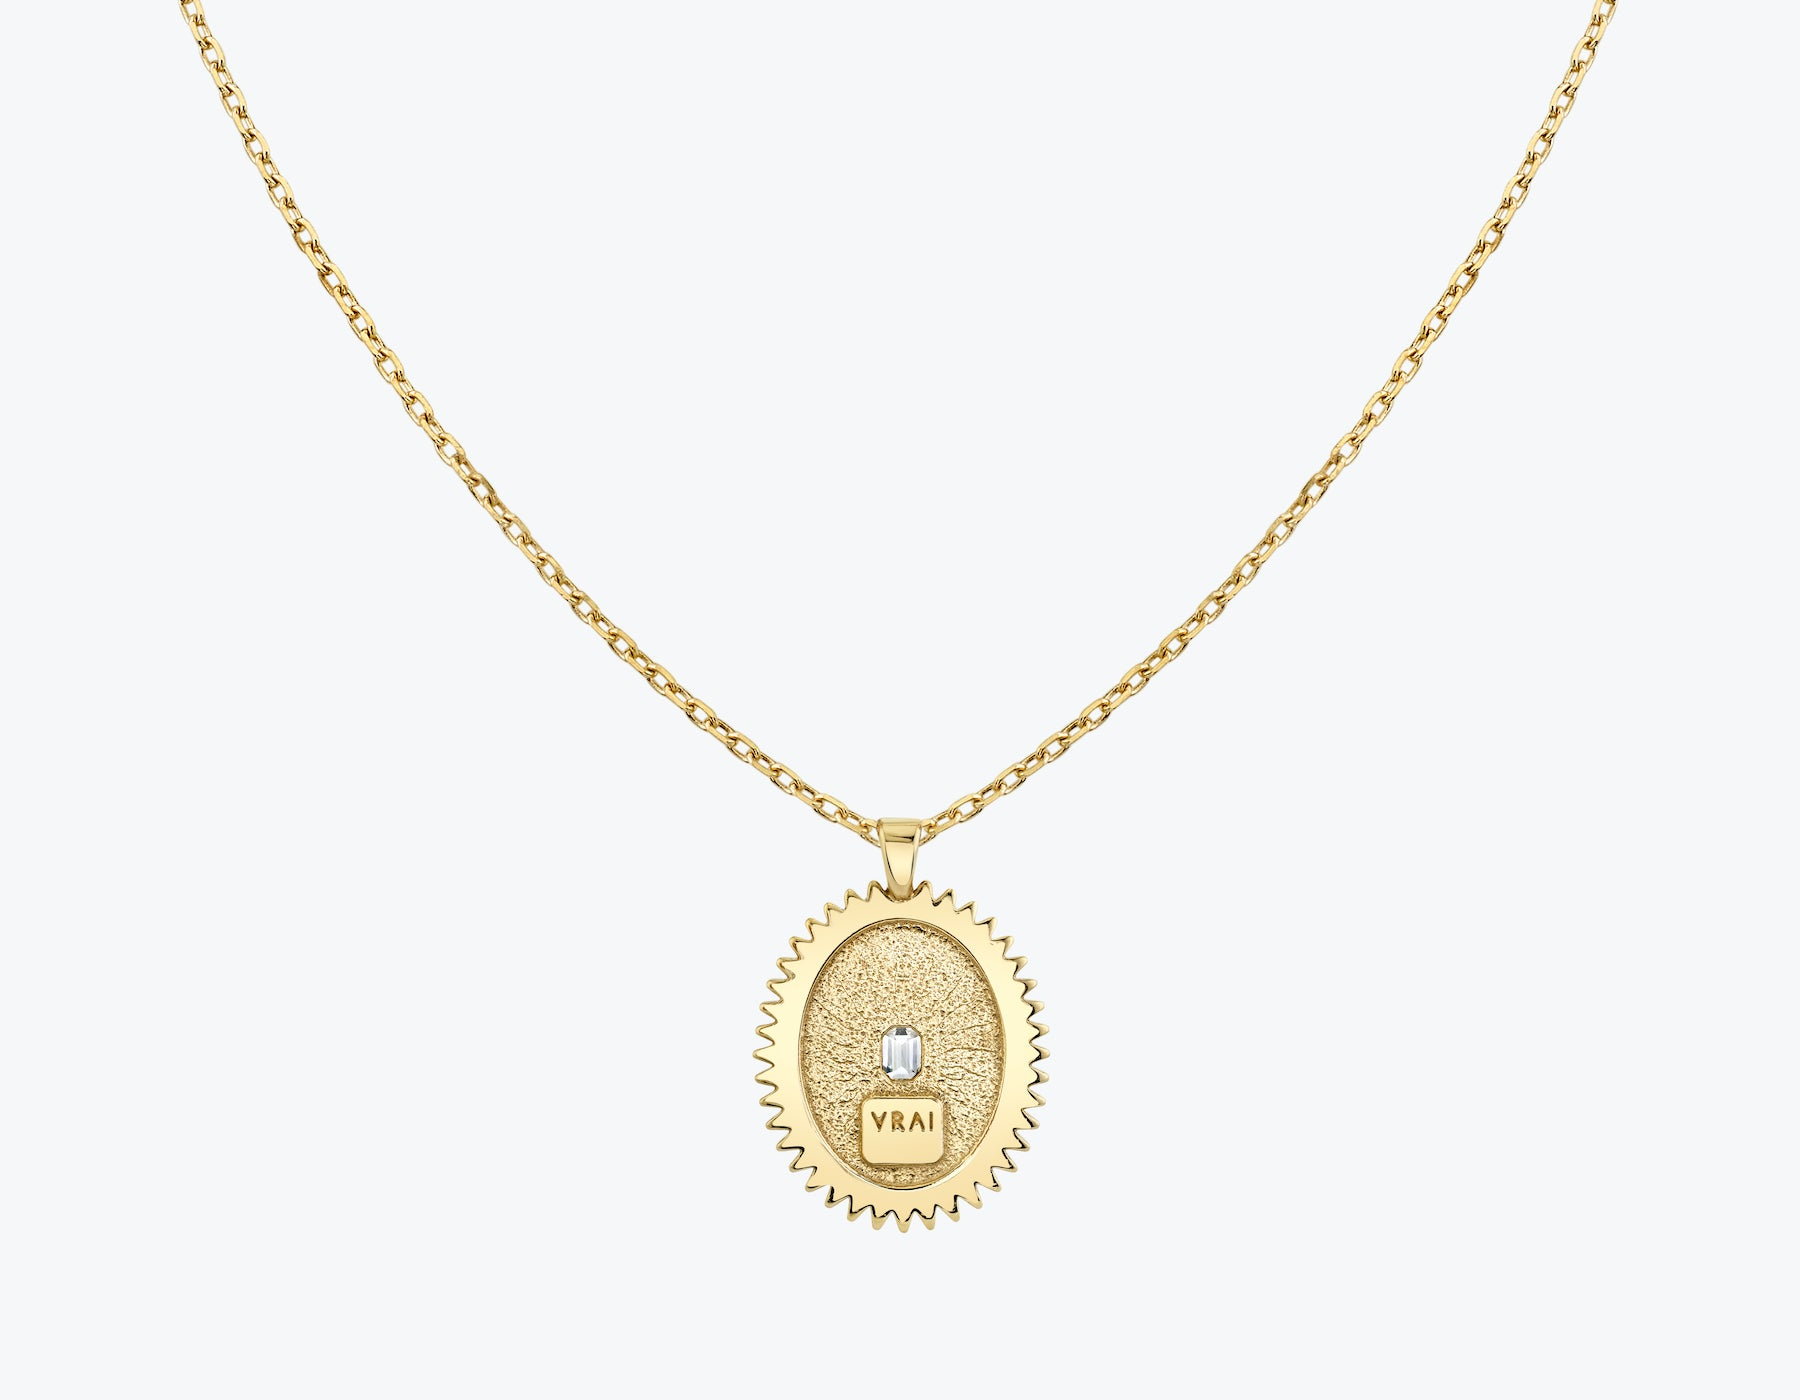 VRAI Inner Light Medallion with .10ct Emerald cut diamond necklace 14k solid gold